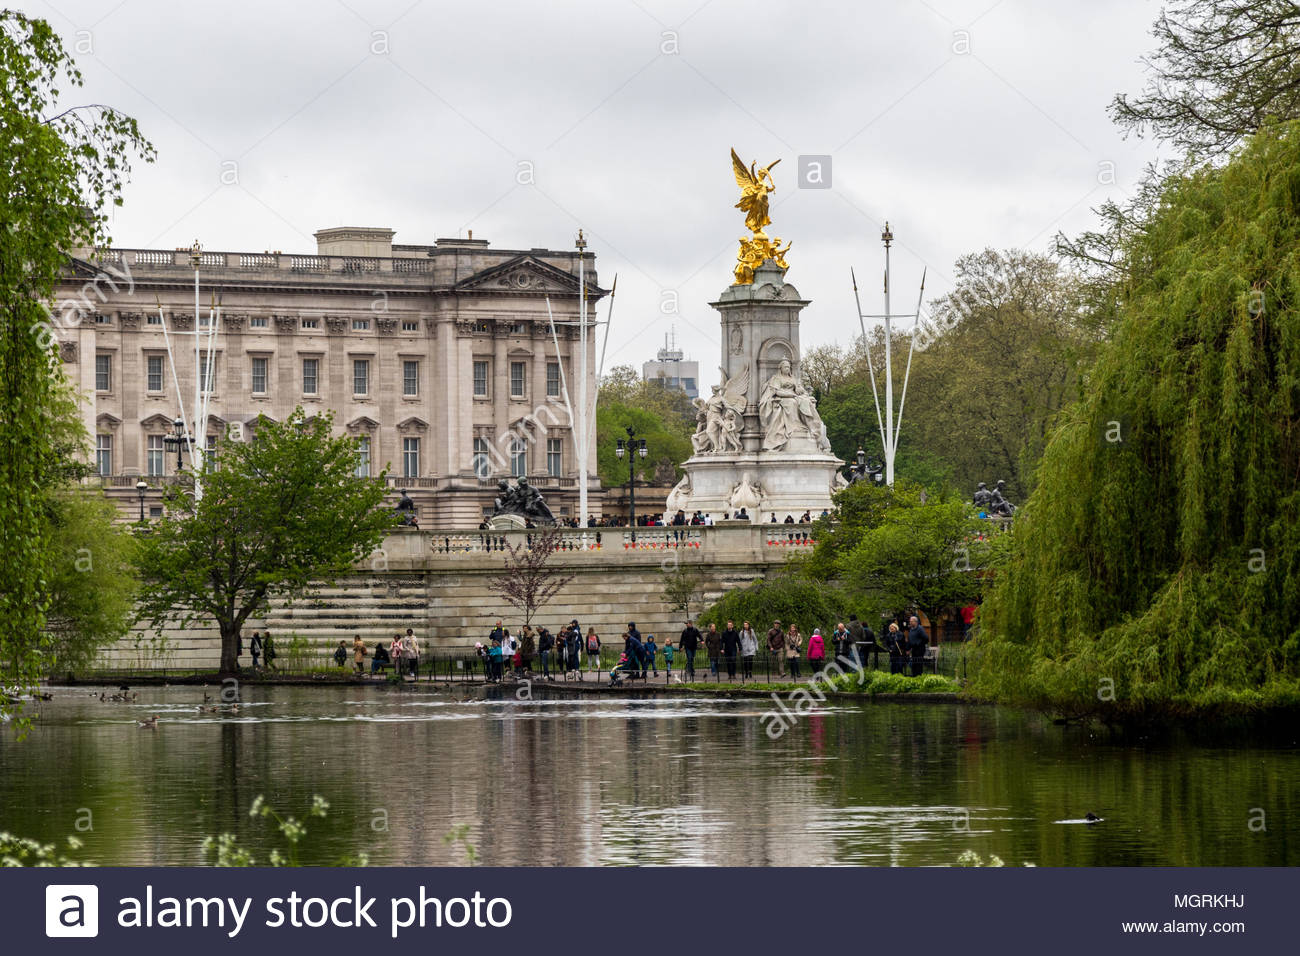 Tourists walk beside the lake in St James Park in the shadow of the Victoria Monument and Buckingham Palace on an overcast day in London. - Stock Image